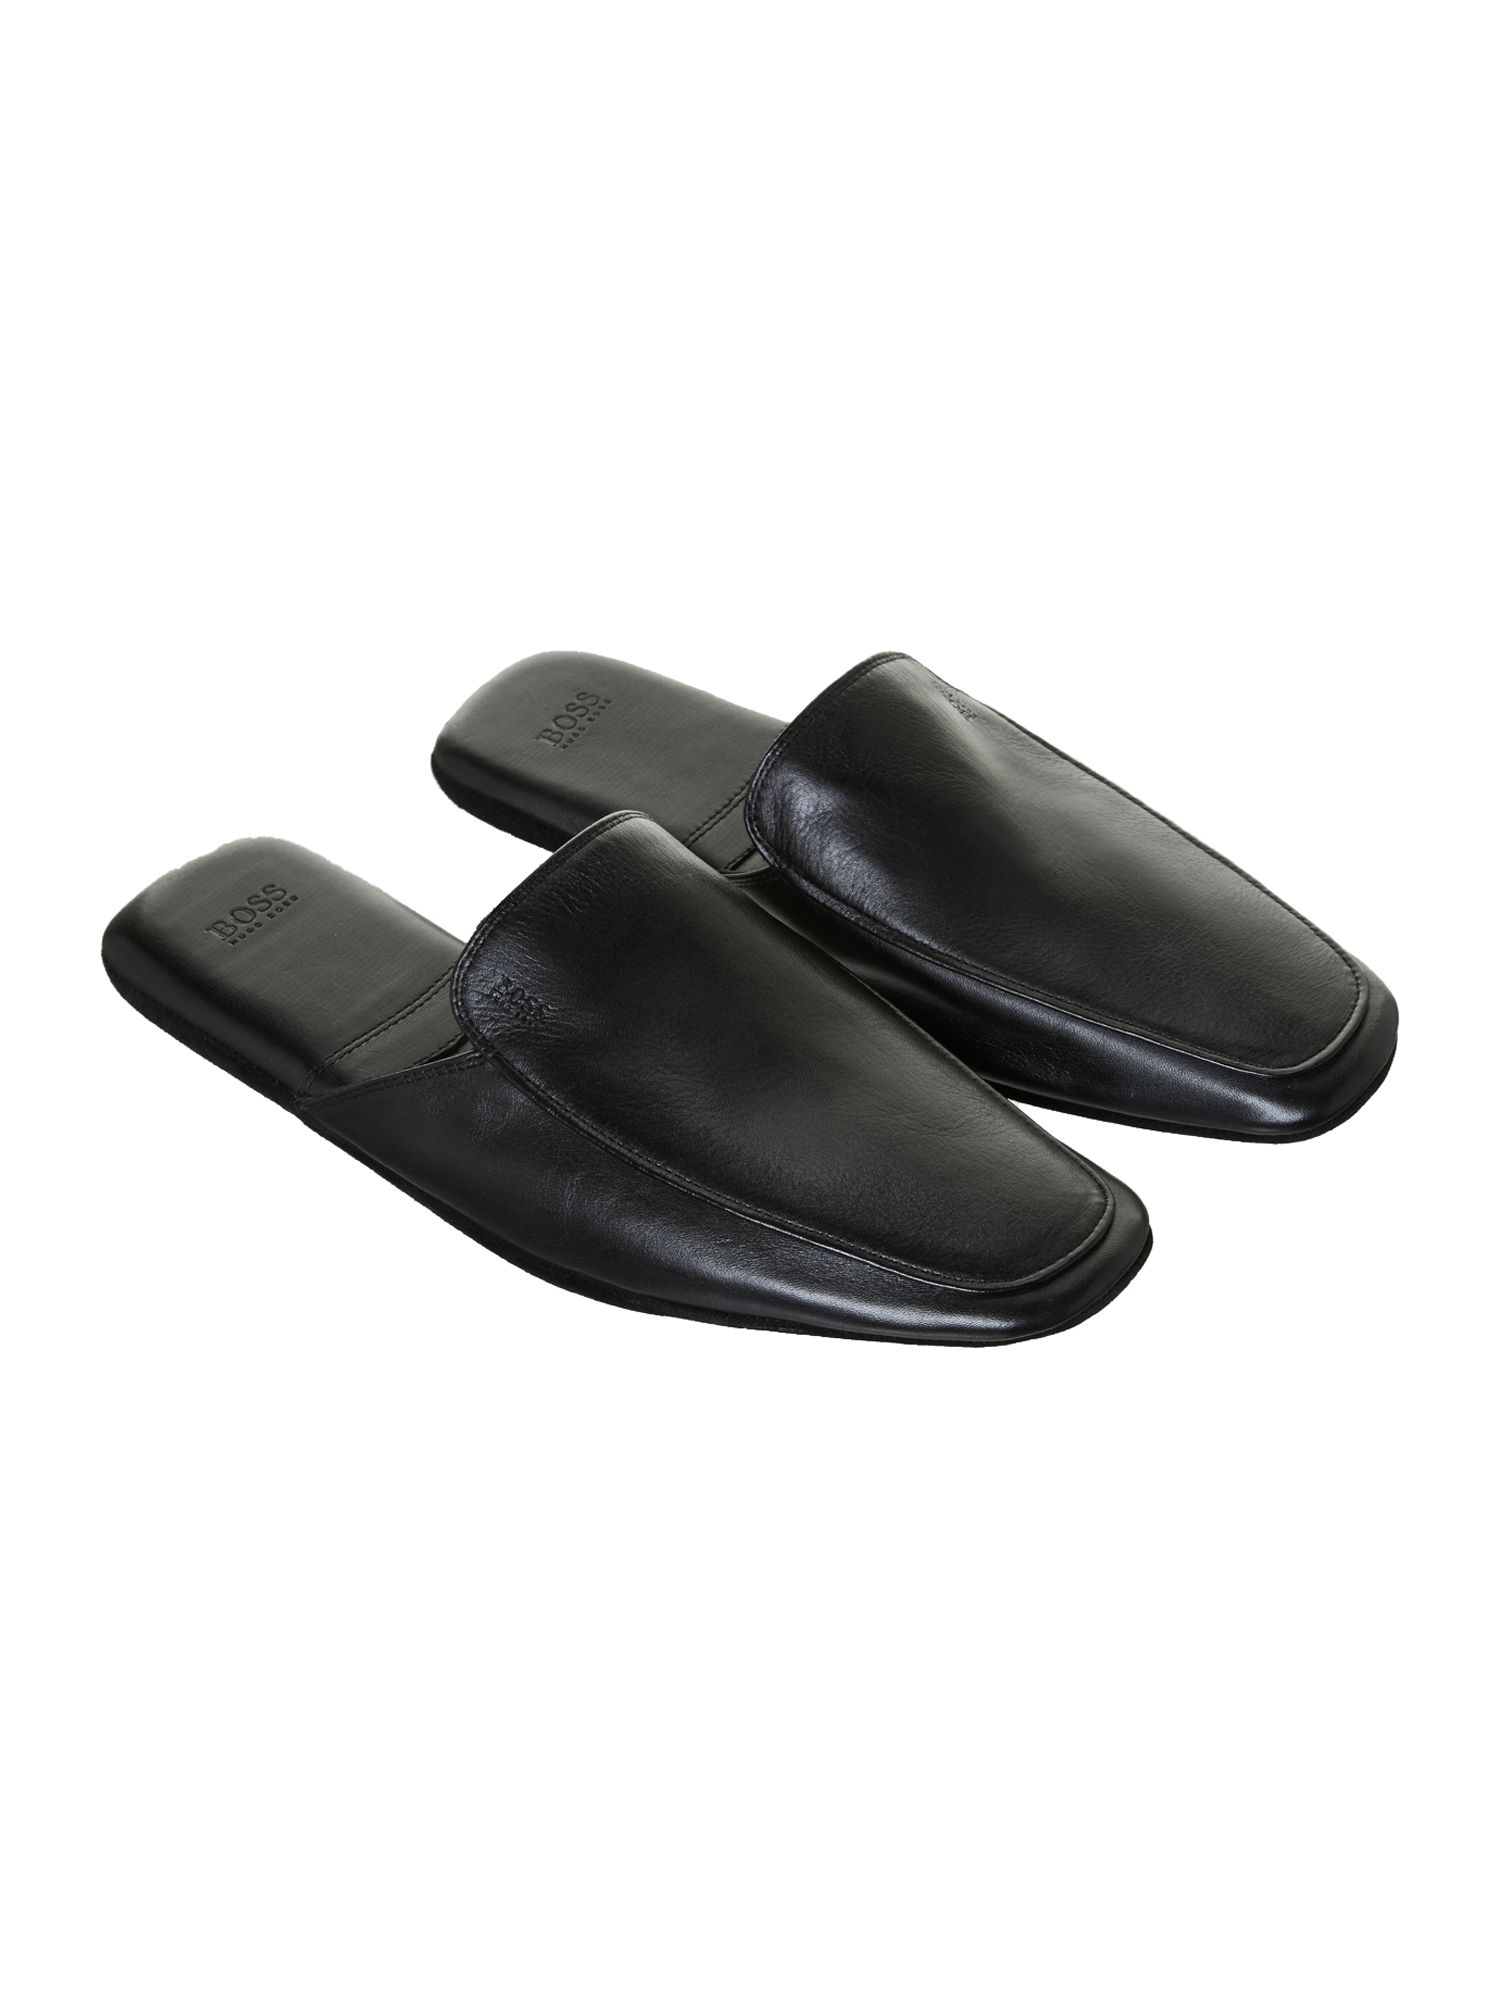 Leather mule slipper